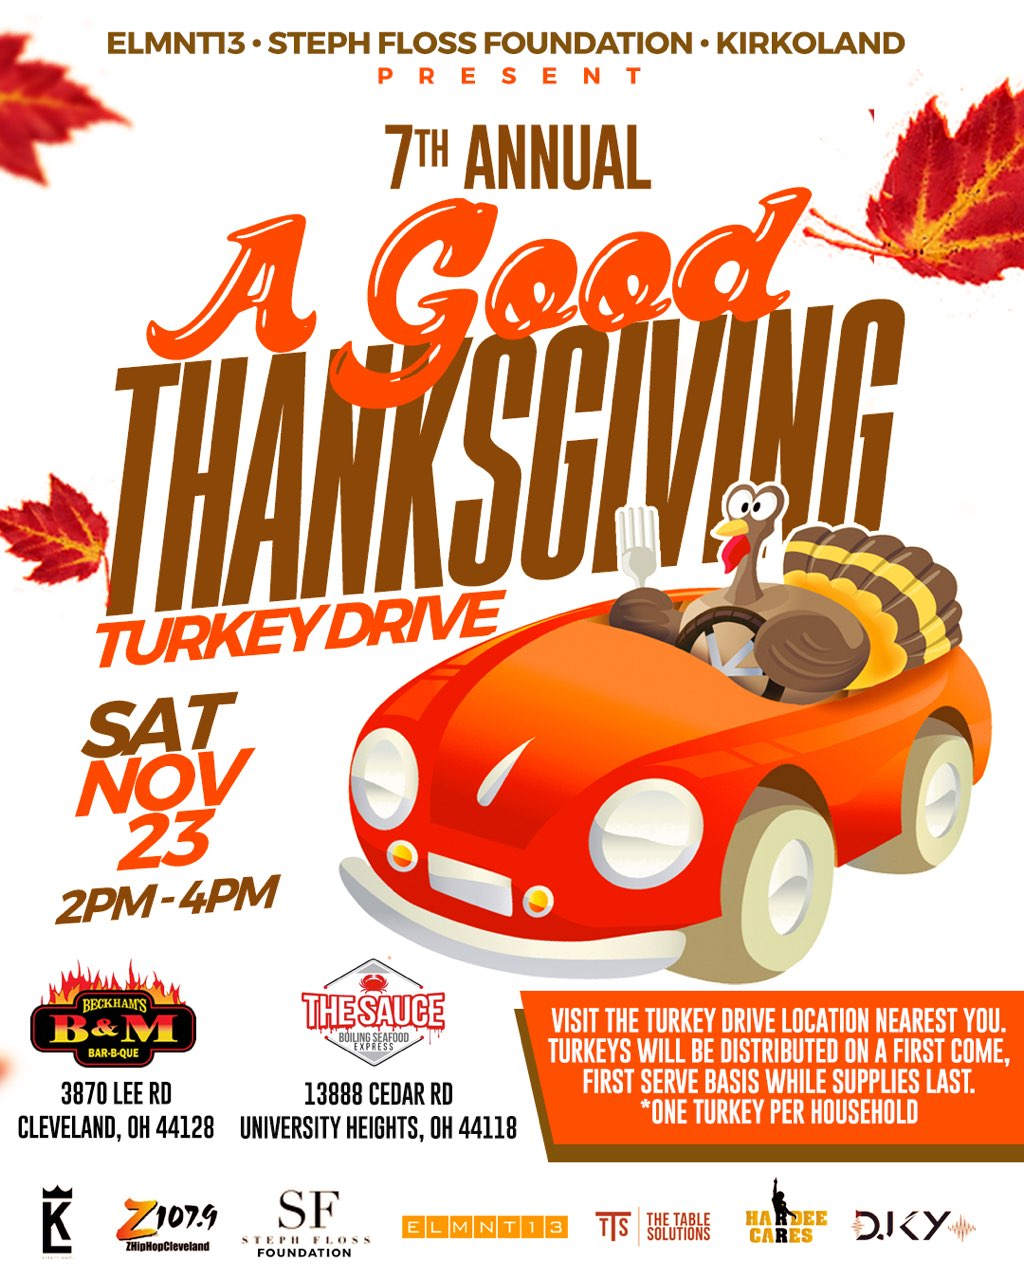 DJ Steph Floss 7TH ANNUAL GOOD THANKSGIVING TURKEY GIVEAWAY